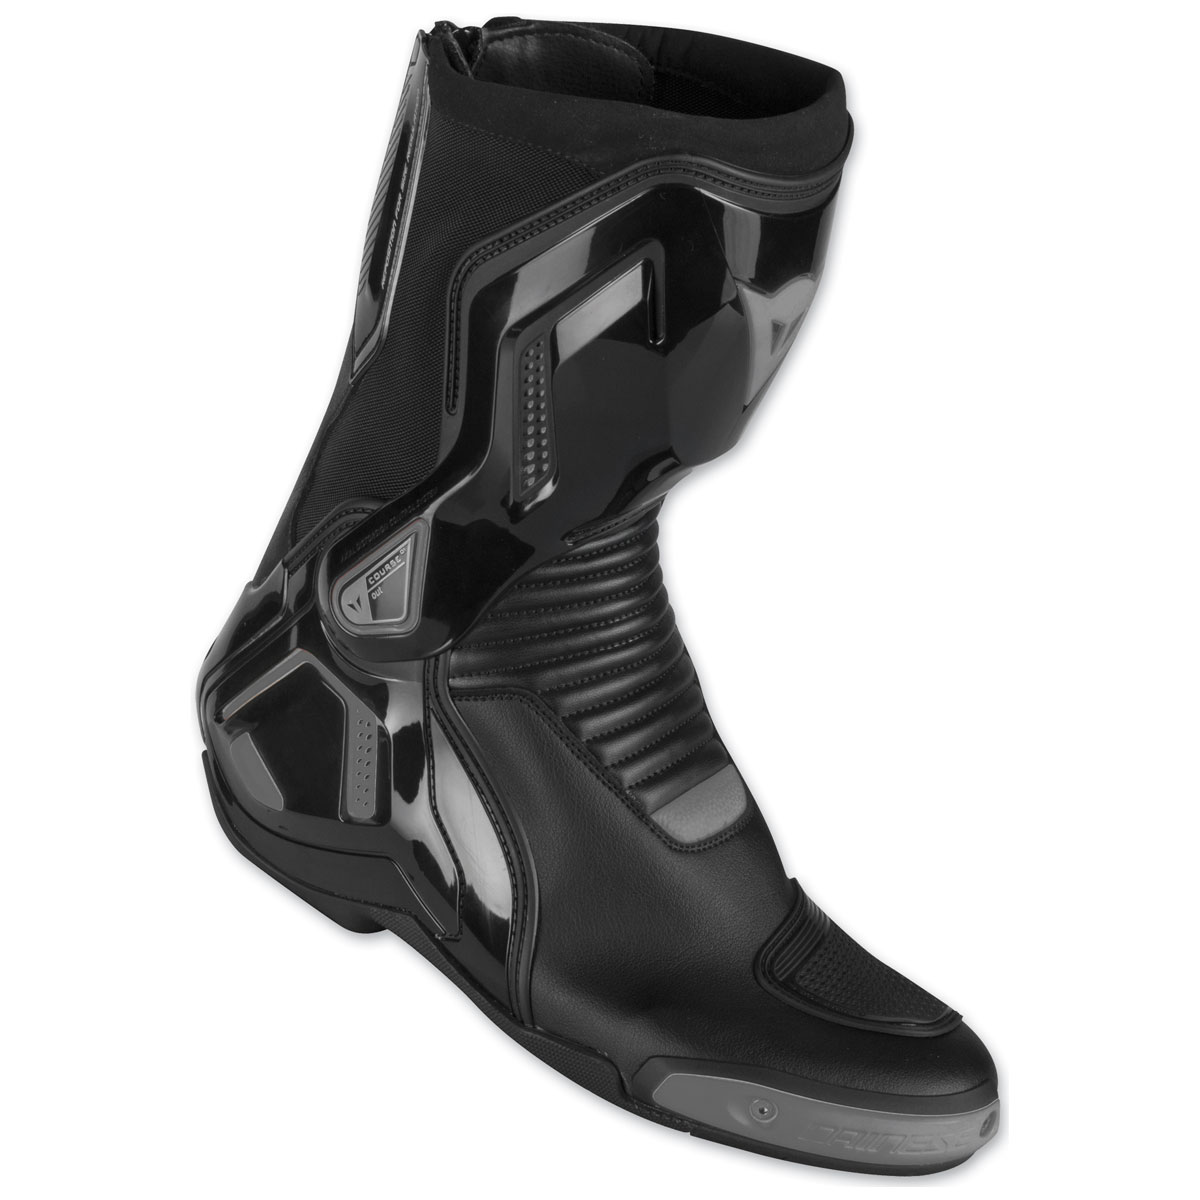 Dainese Course D1 Out Black/Anthracite Boots